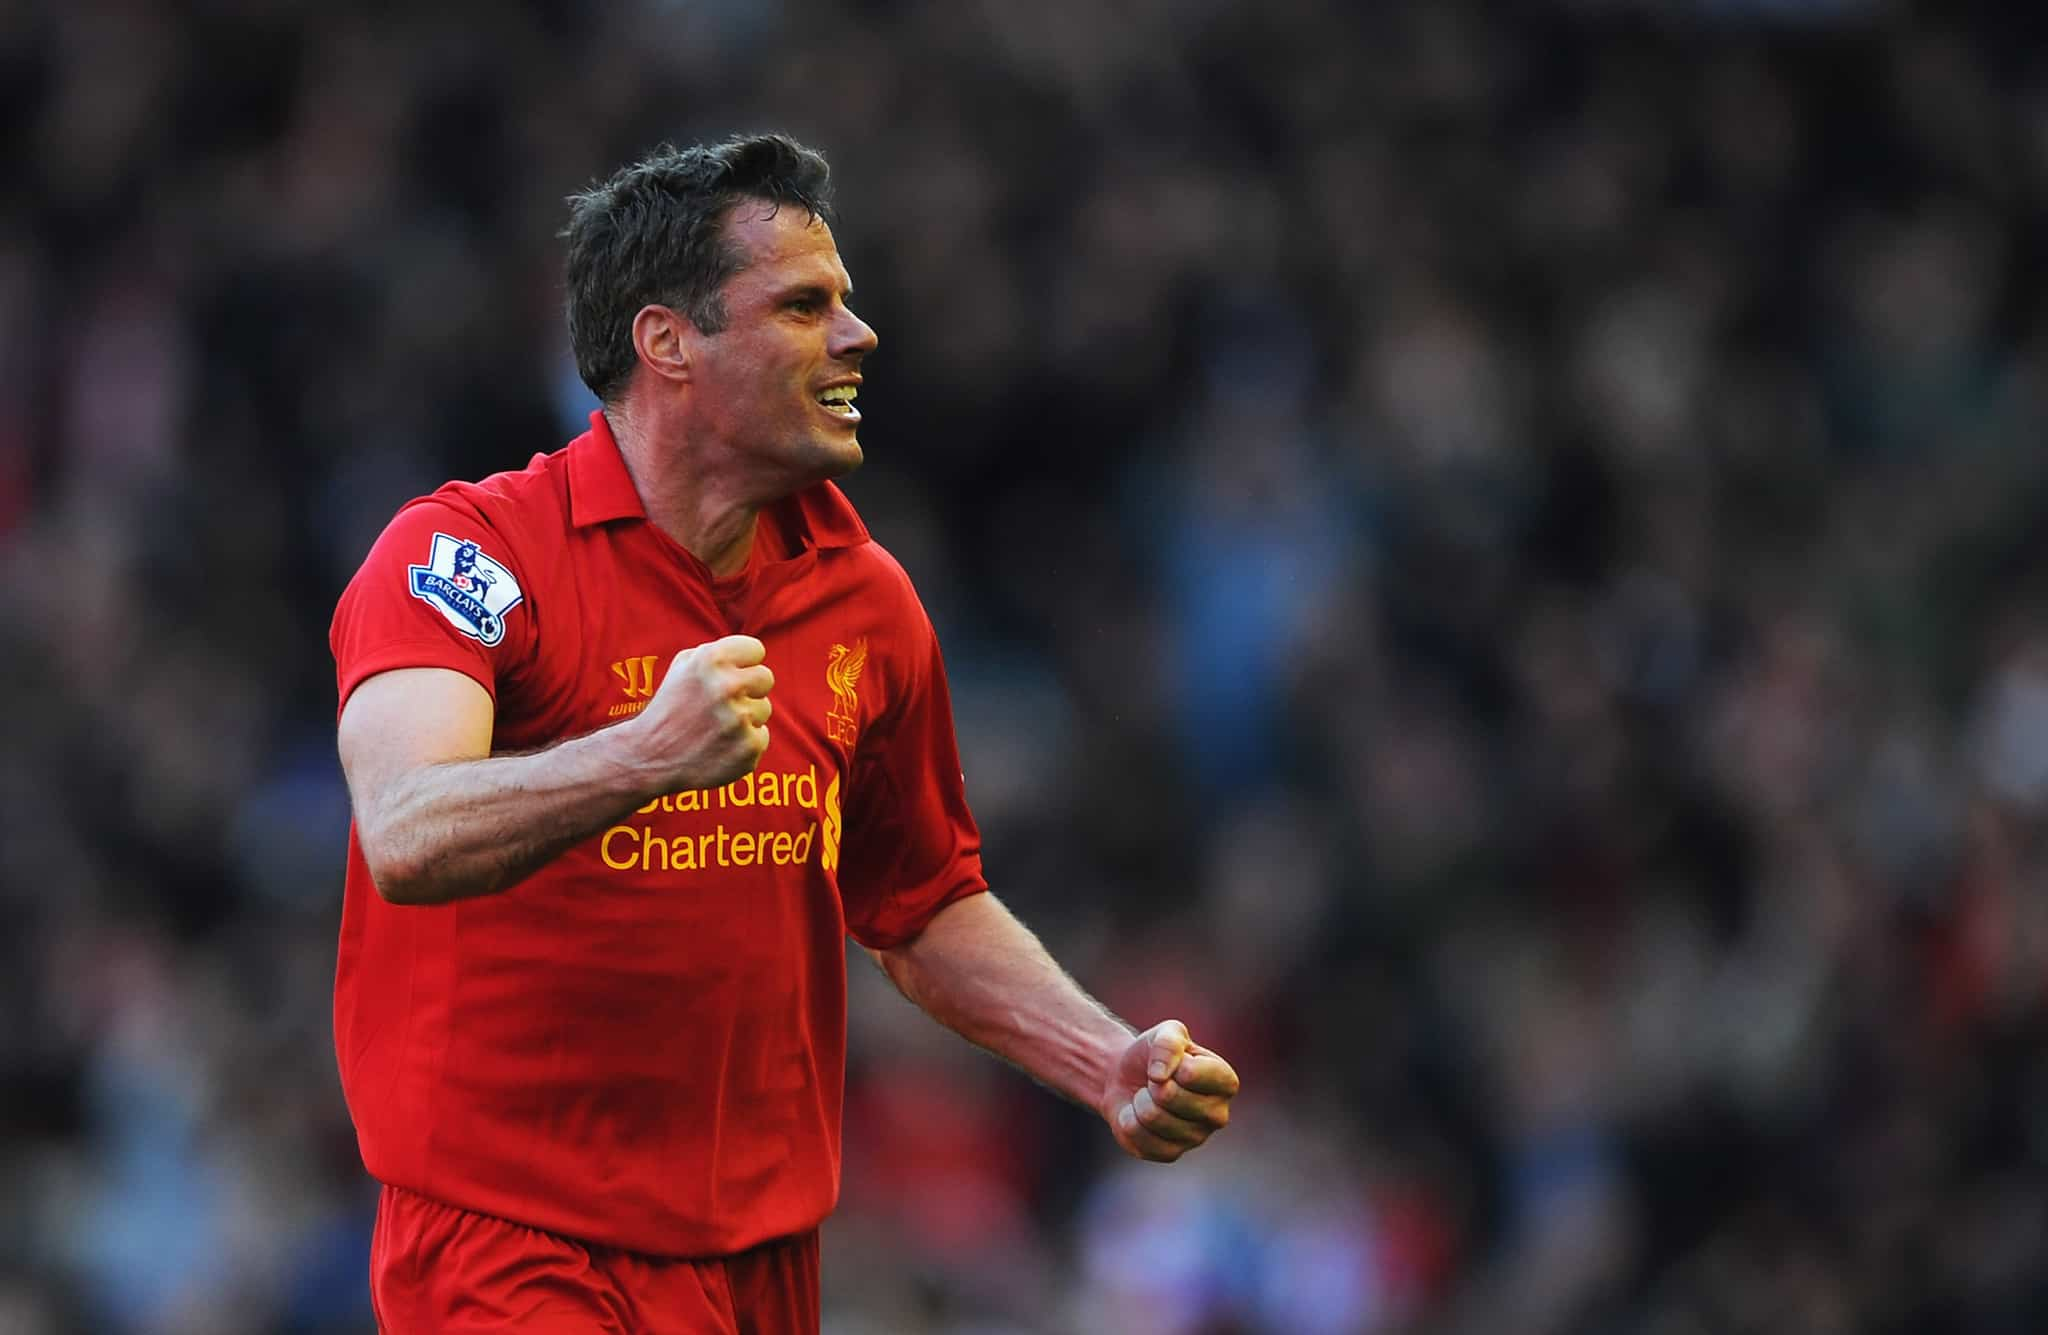 Jamie Carragher: Liverpool's ultimate one club man